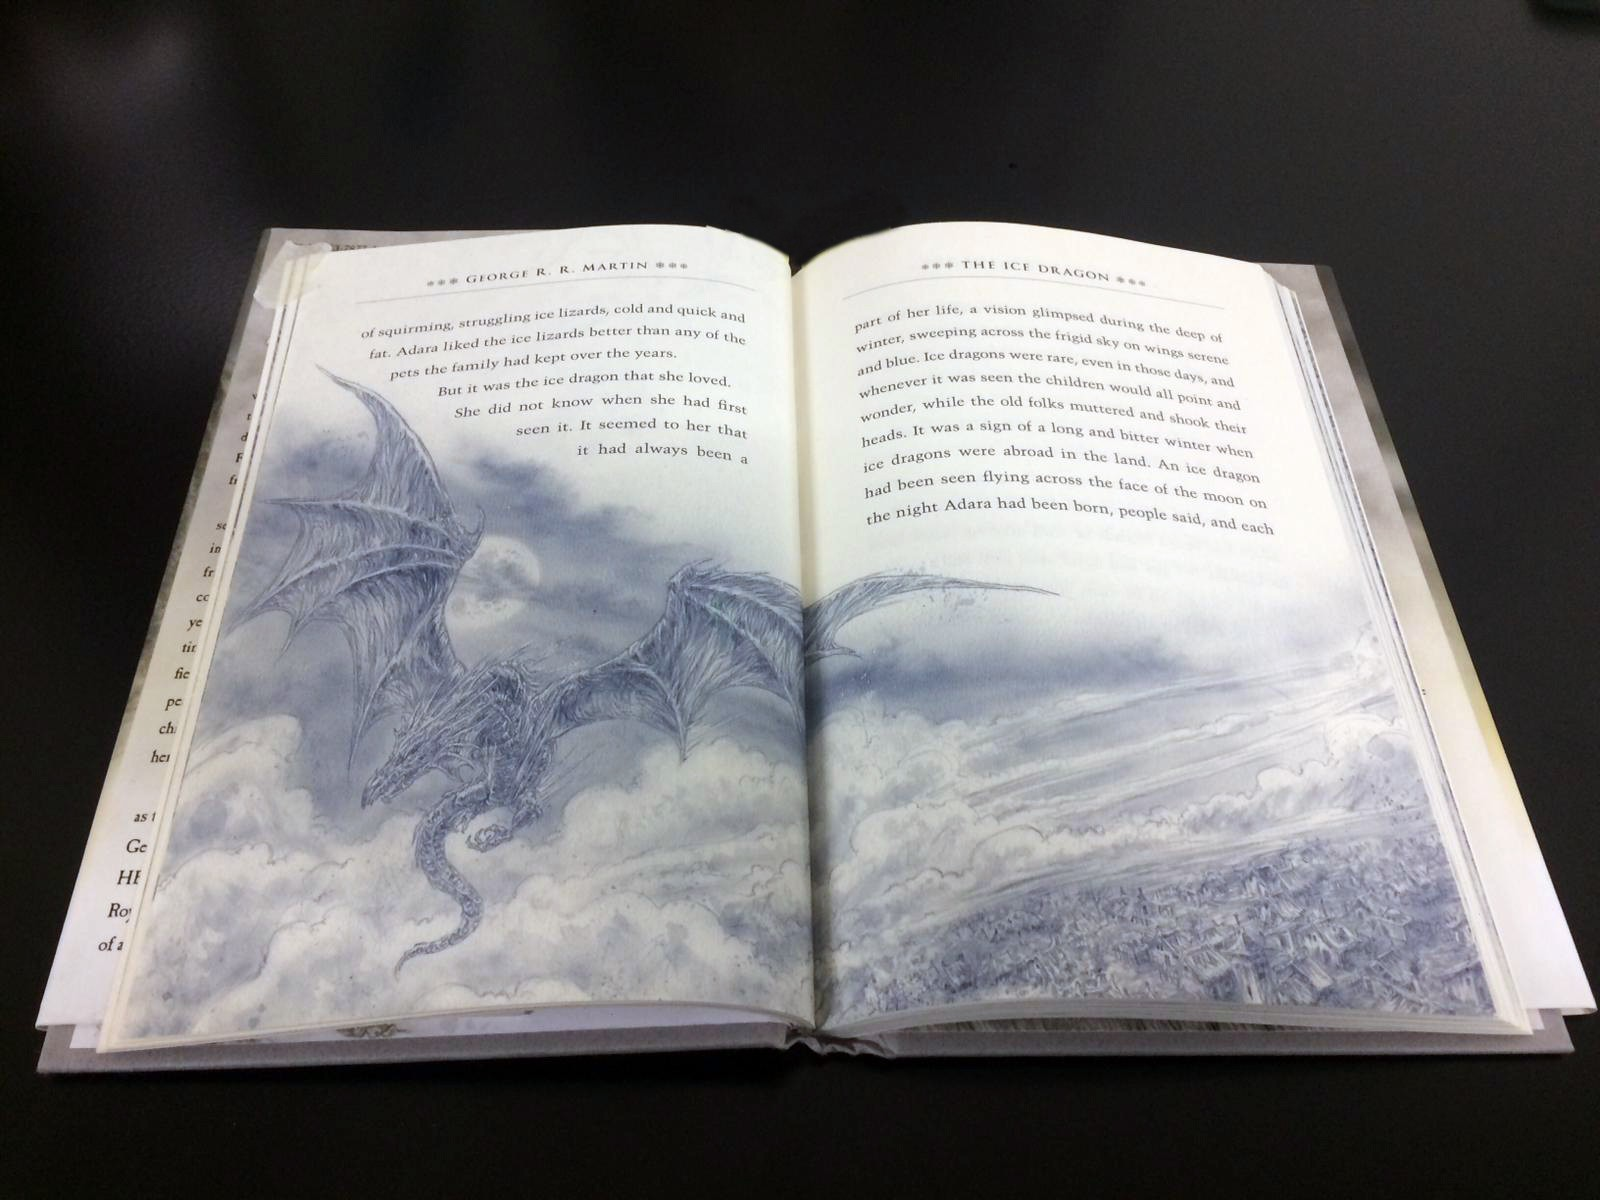 THE ICE DRAGON, CHAPTER 2 SECOND